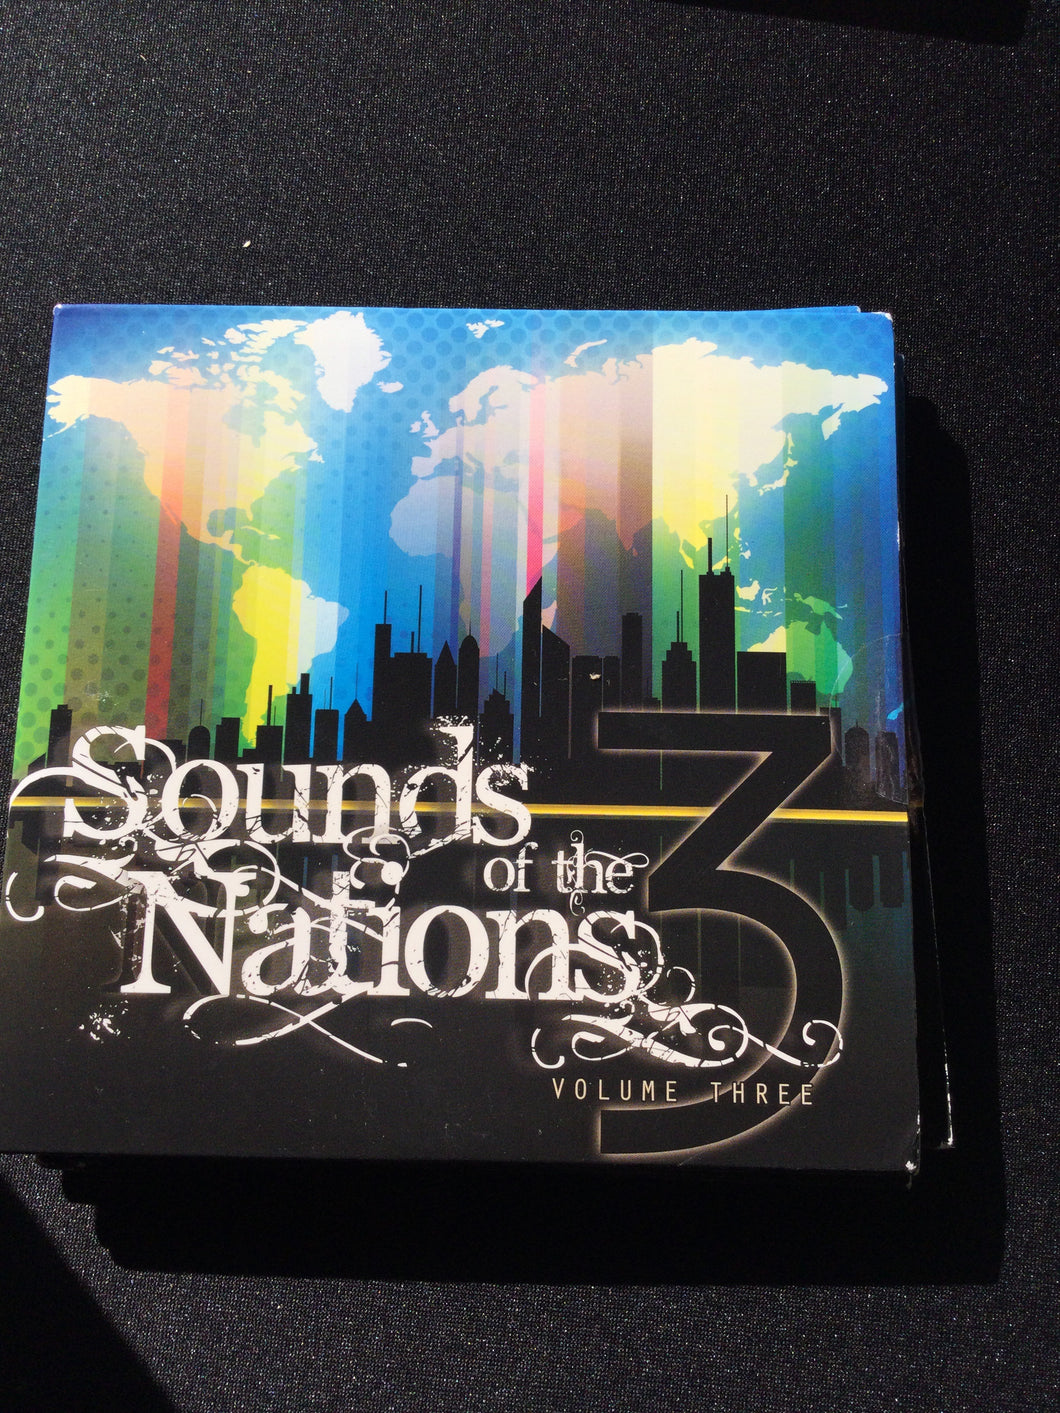 Sounds of the Nations 3